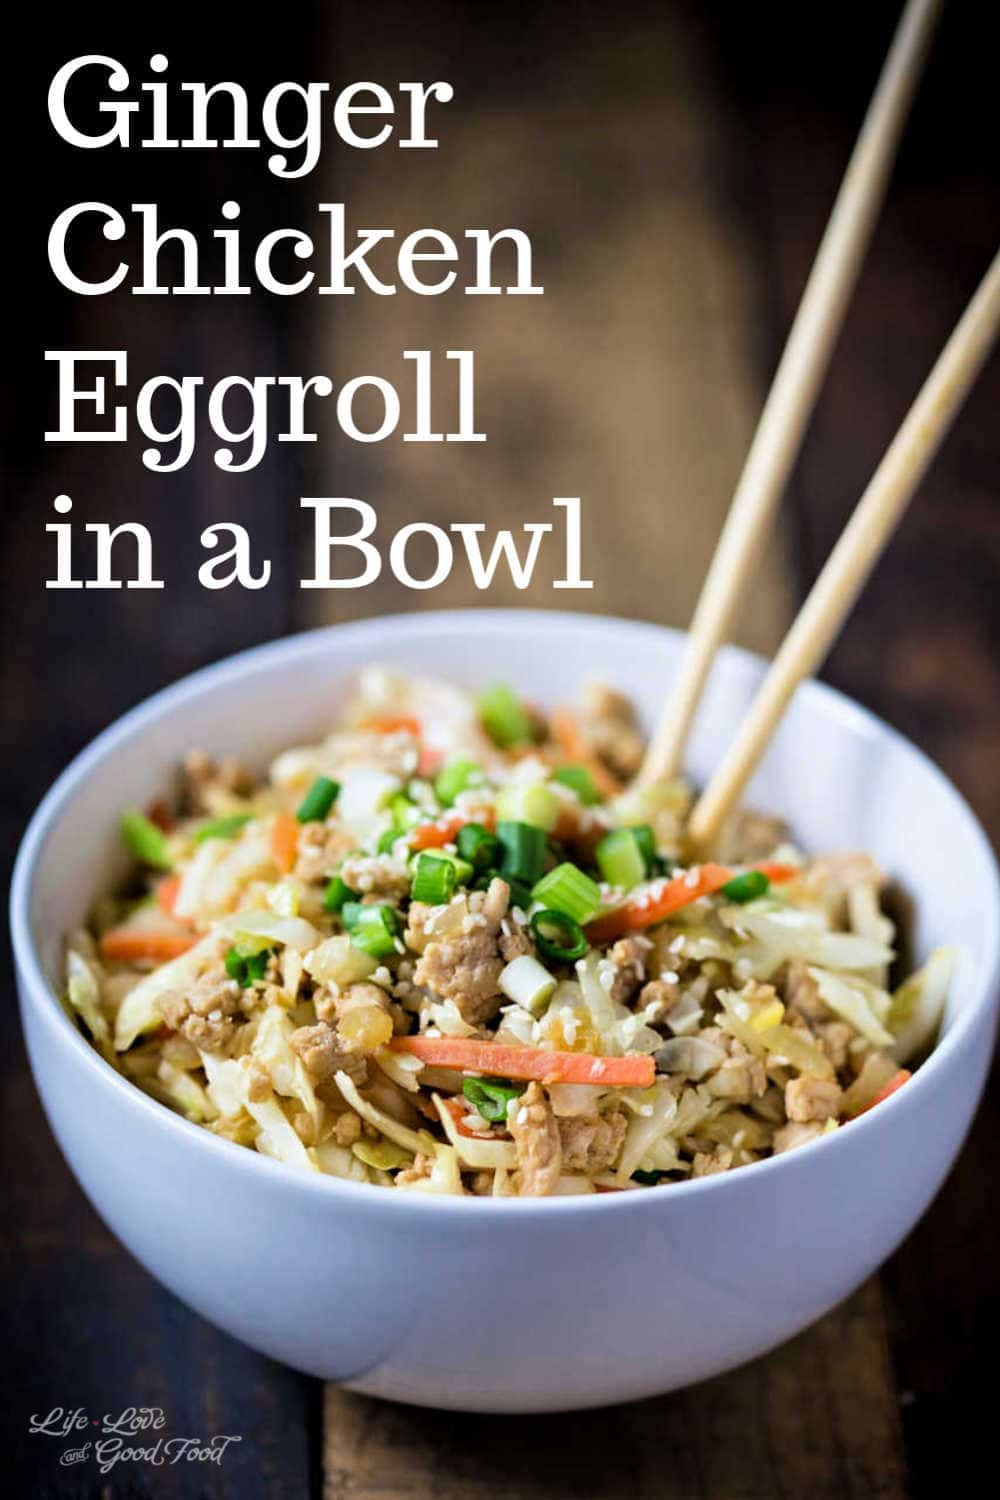 Fresh ginger adds a spicy, earthy flavor to this simple one-bowl meal that's ready in just 30-minutes prep-to-finish. Low carb and tasty, Chicken Egg Roll Bowls are perfect for busy weeknights. This deconstructed egg roll is made with ground chicken, shredded cabbage (coleslaw mix), julienned carrots, onions, garlic, and fresh ginger root. Add a splash of sesame oil and soy sauce and garnish with sliced green onions or sesame seeds.